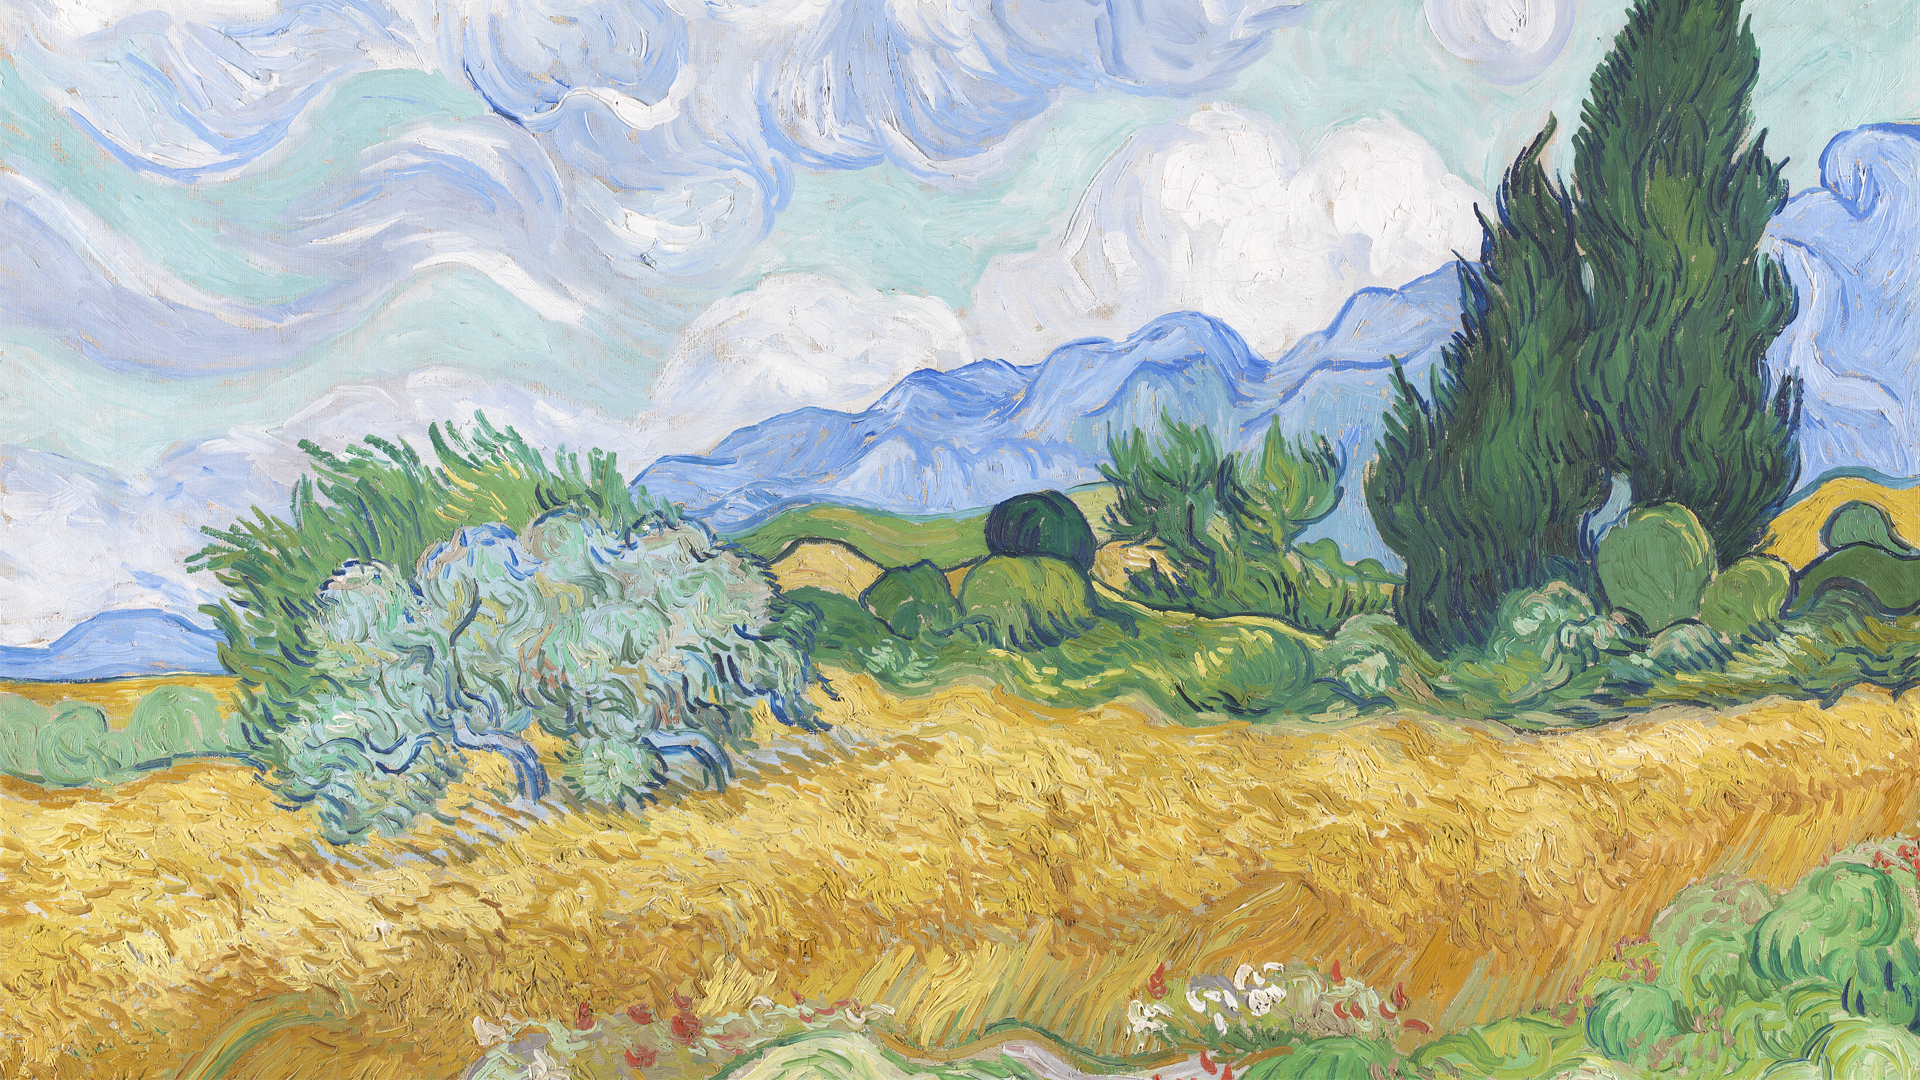 NG3861 - Vincent van Gogh. A Wheatfield, with Cypresses. 1889. © The National Gallery, London